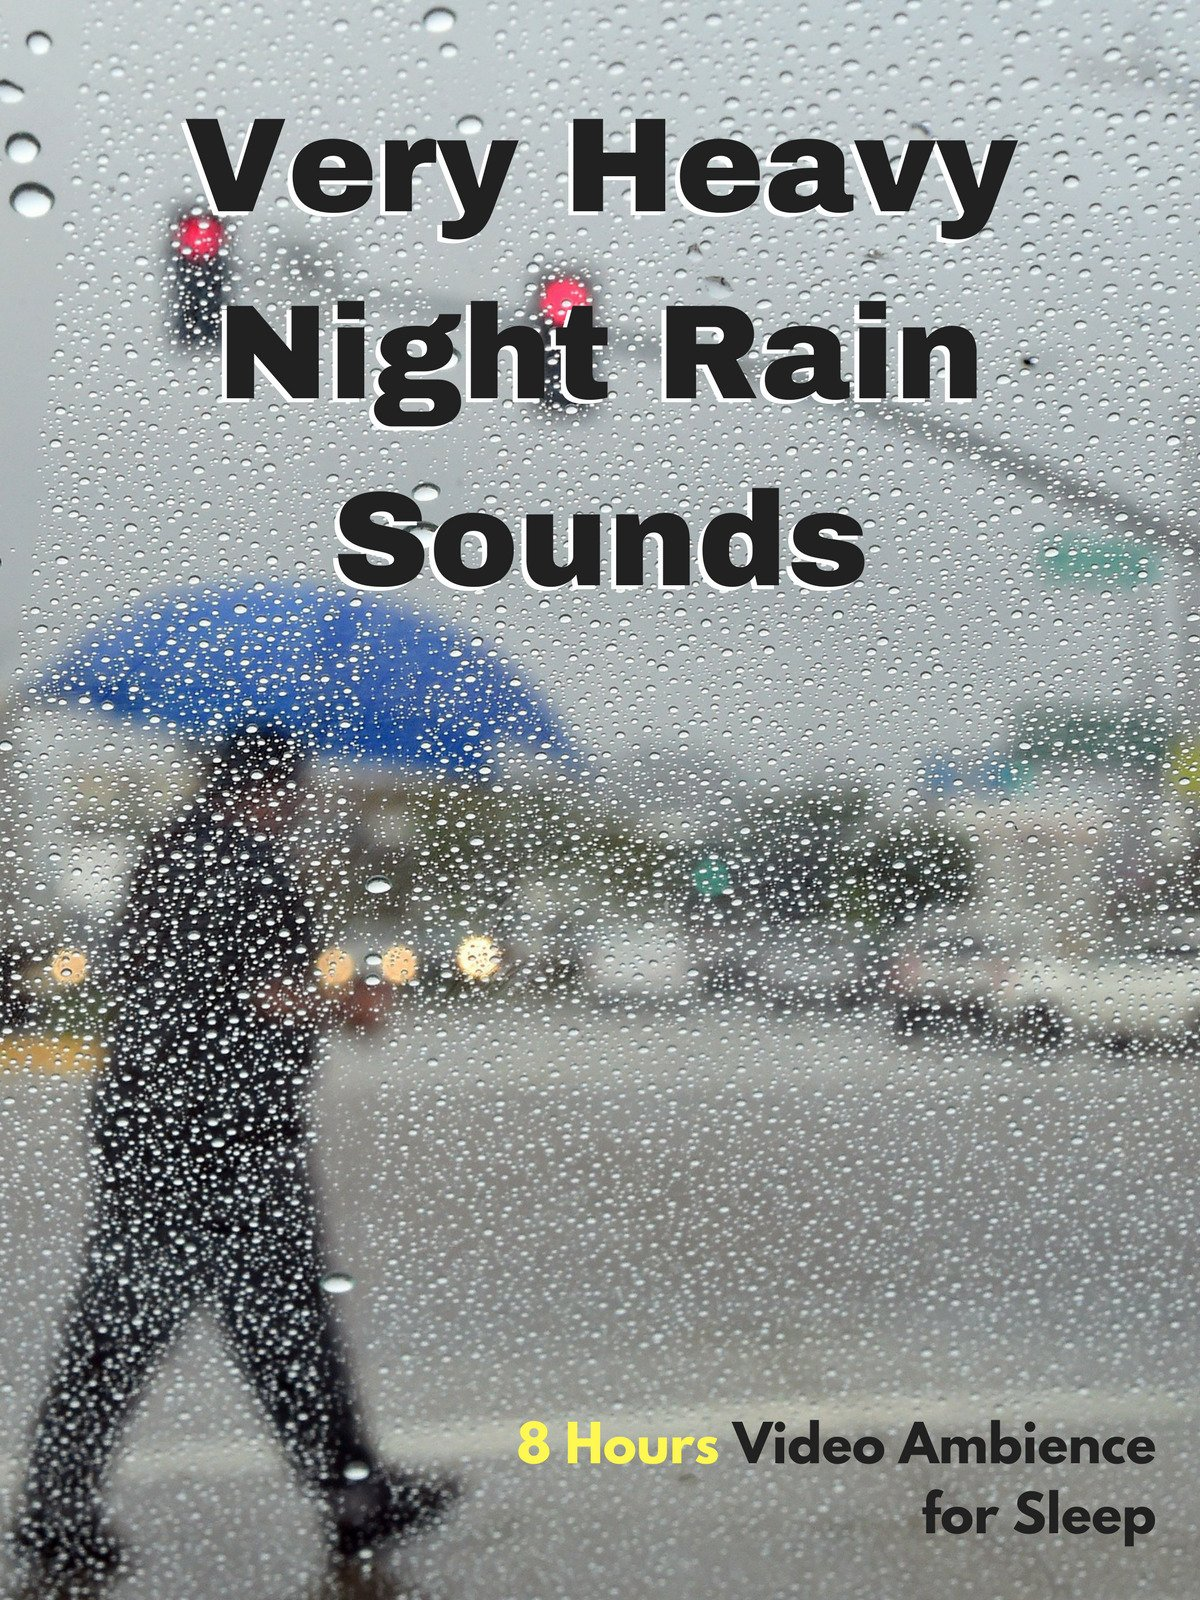 Very Heavy Night Rain Sounds